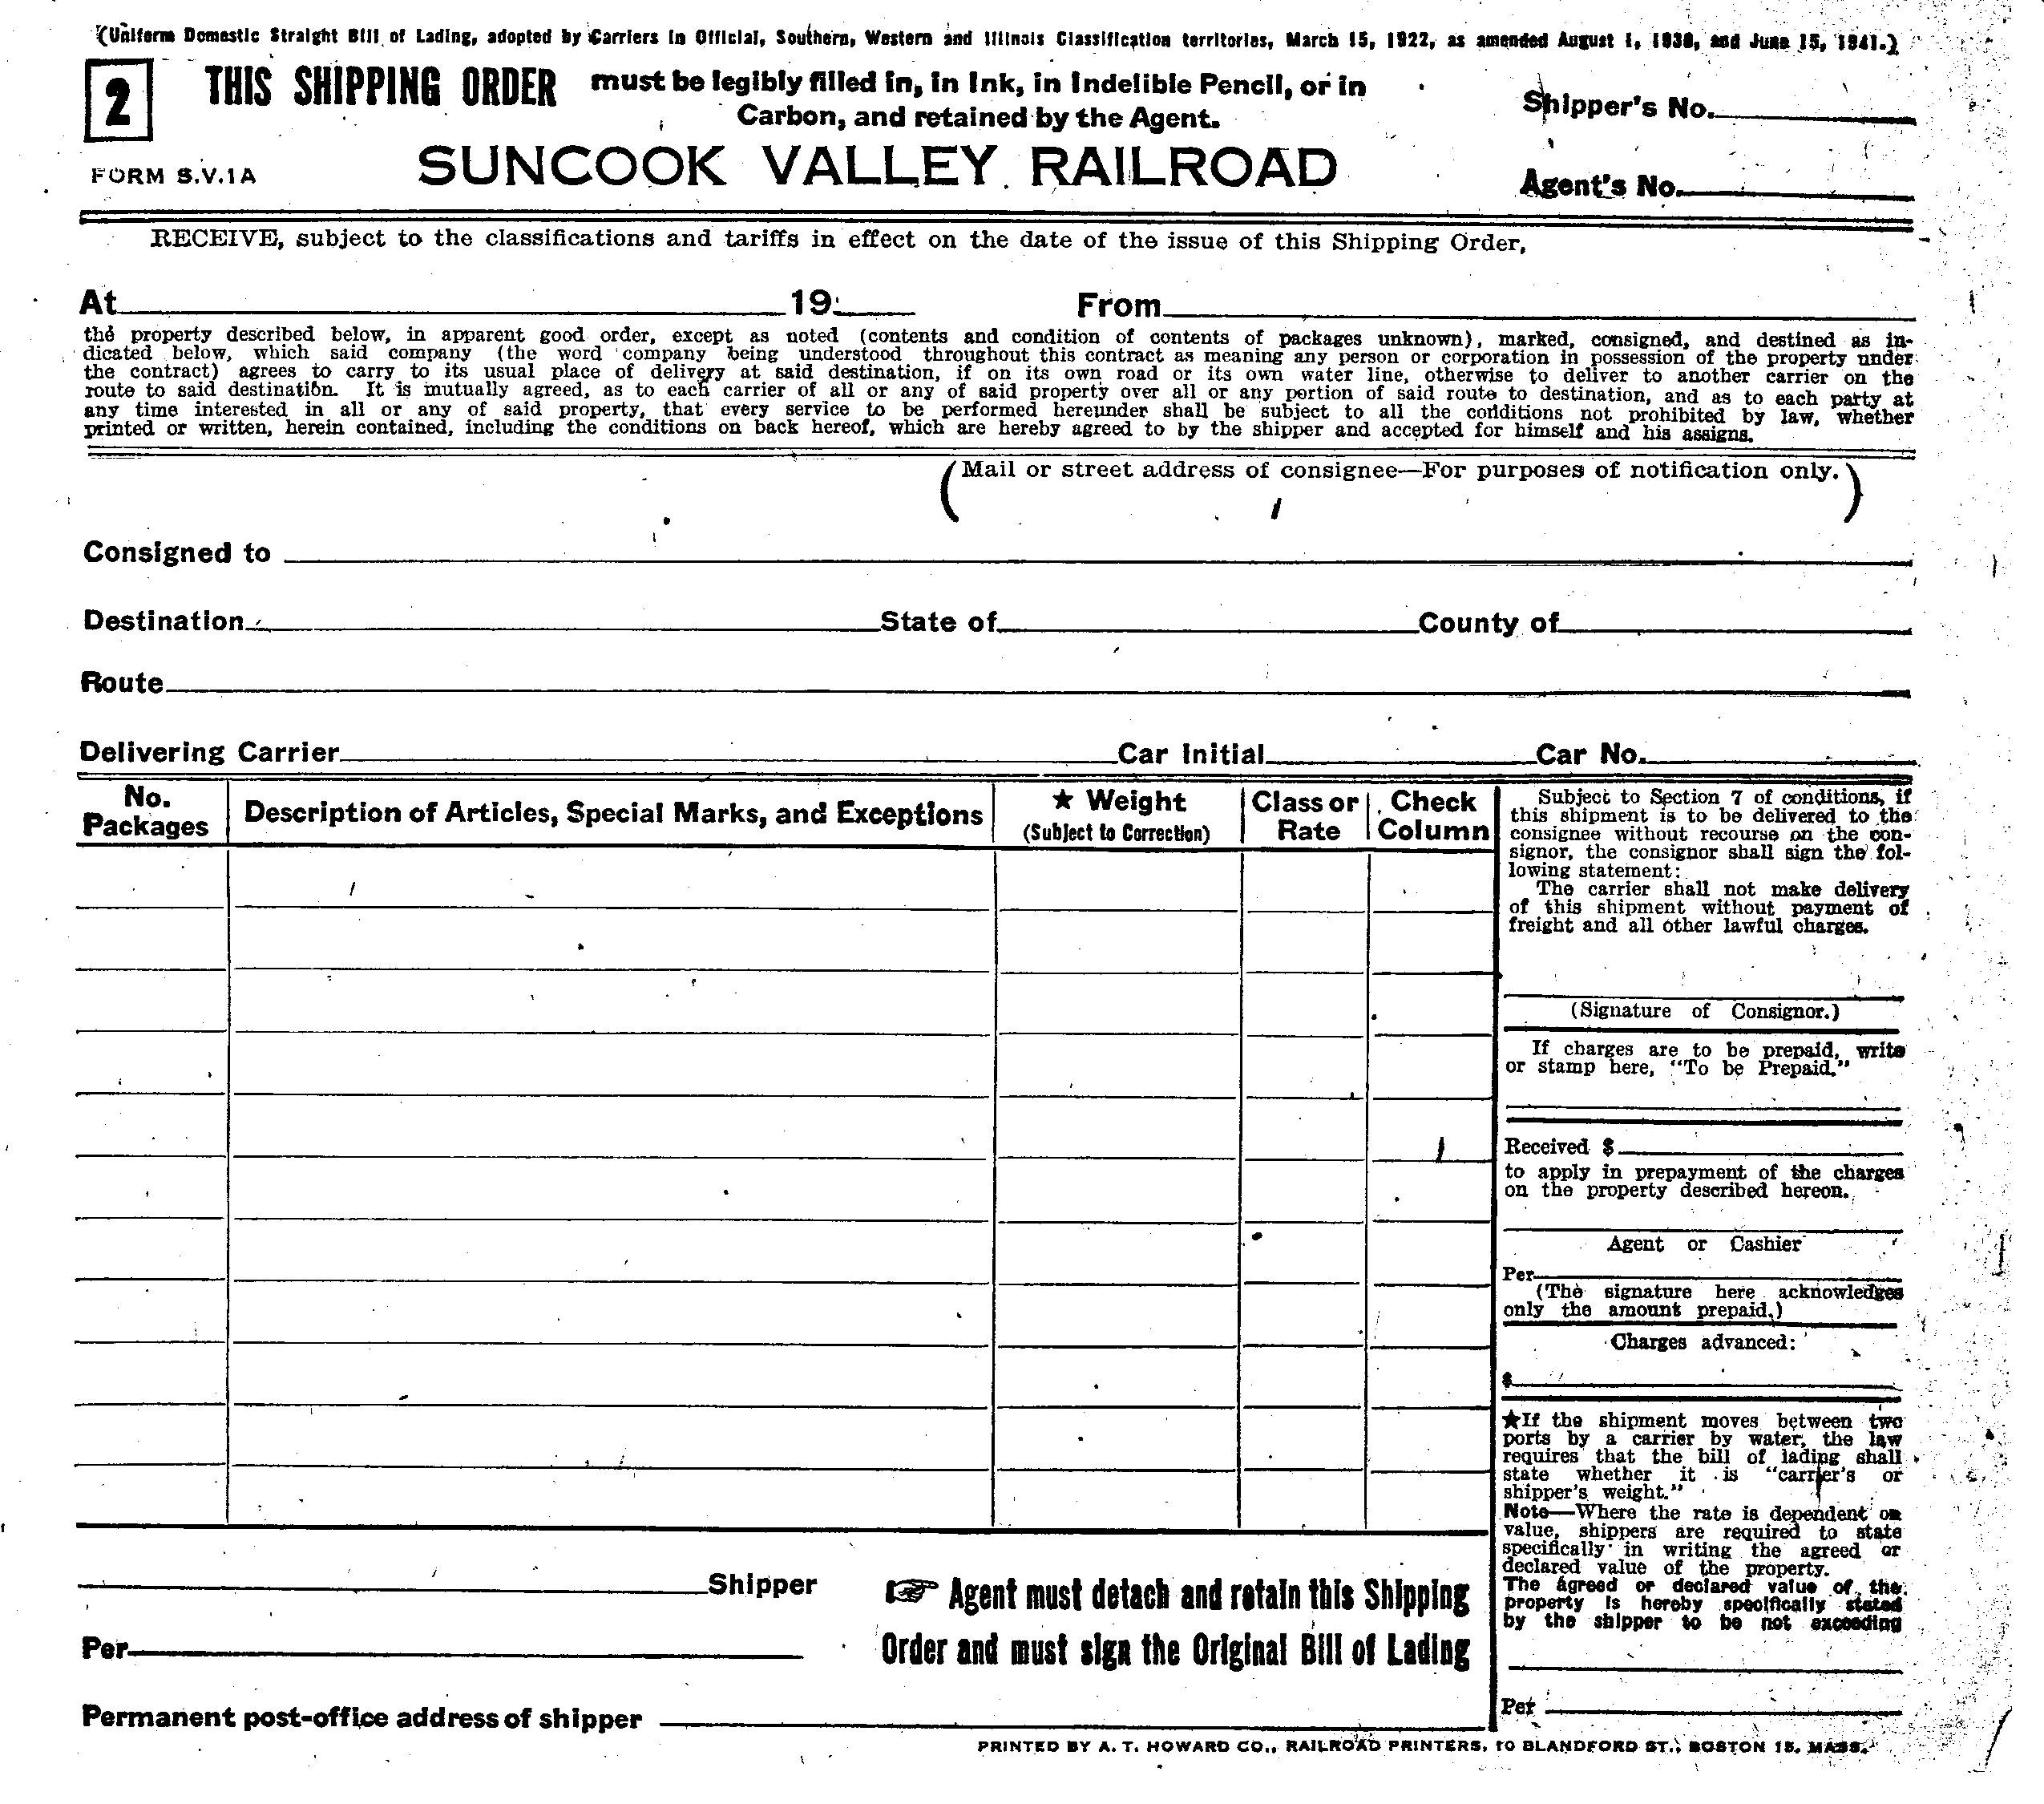 Shipping Bill Of Lading. Suncook Valley Railroad Freight Service Documents .  Blank Bill Of Lading Form Template